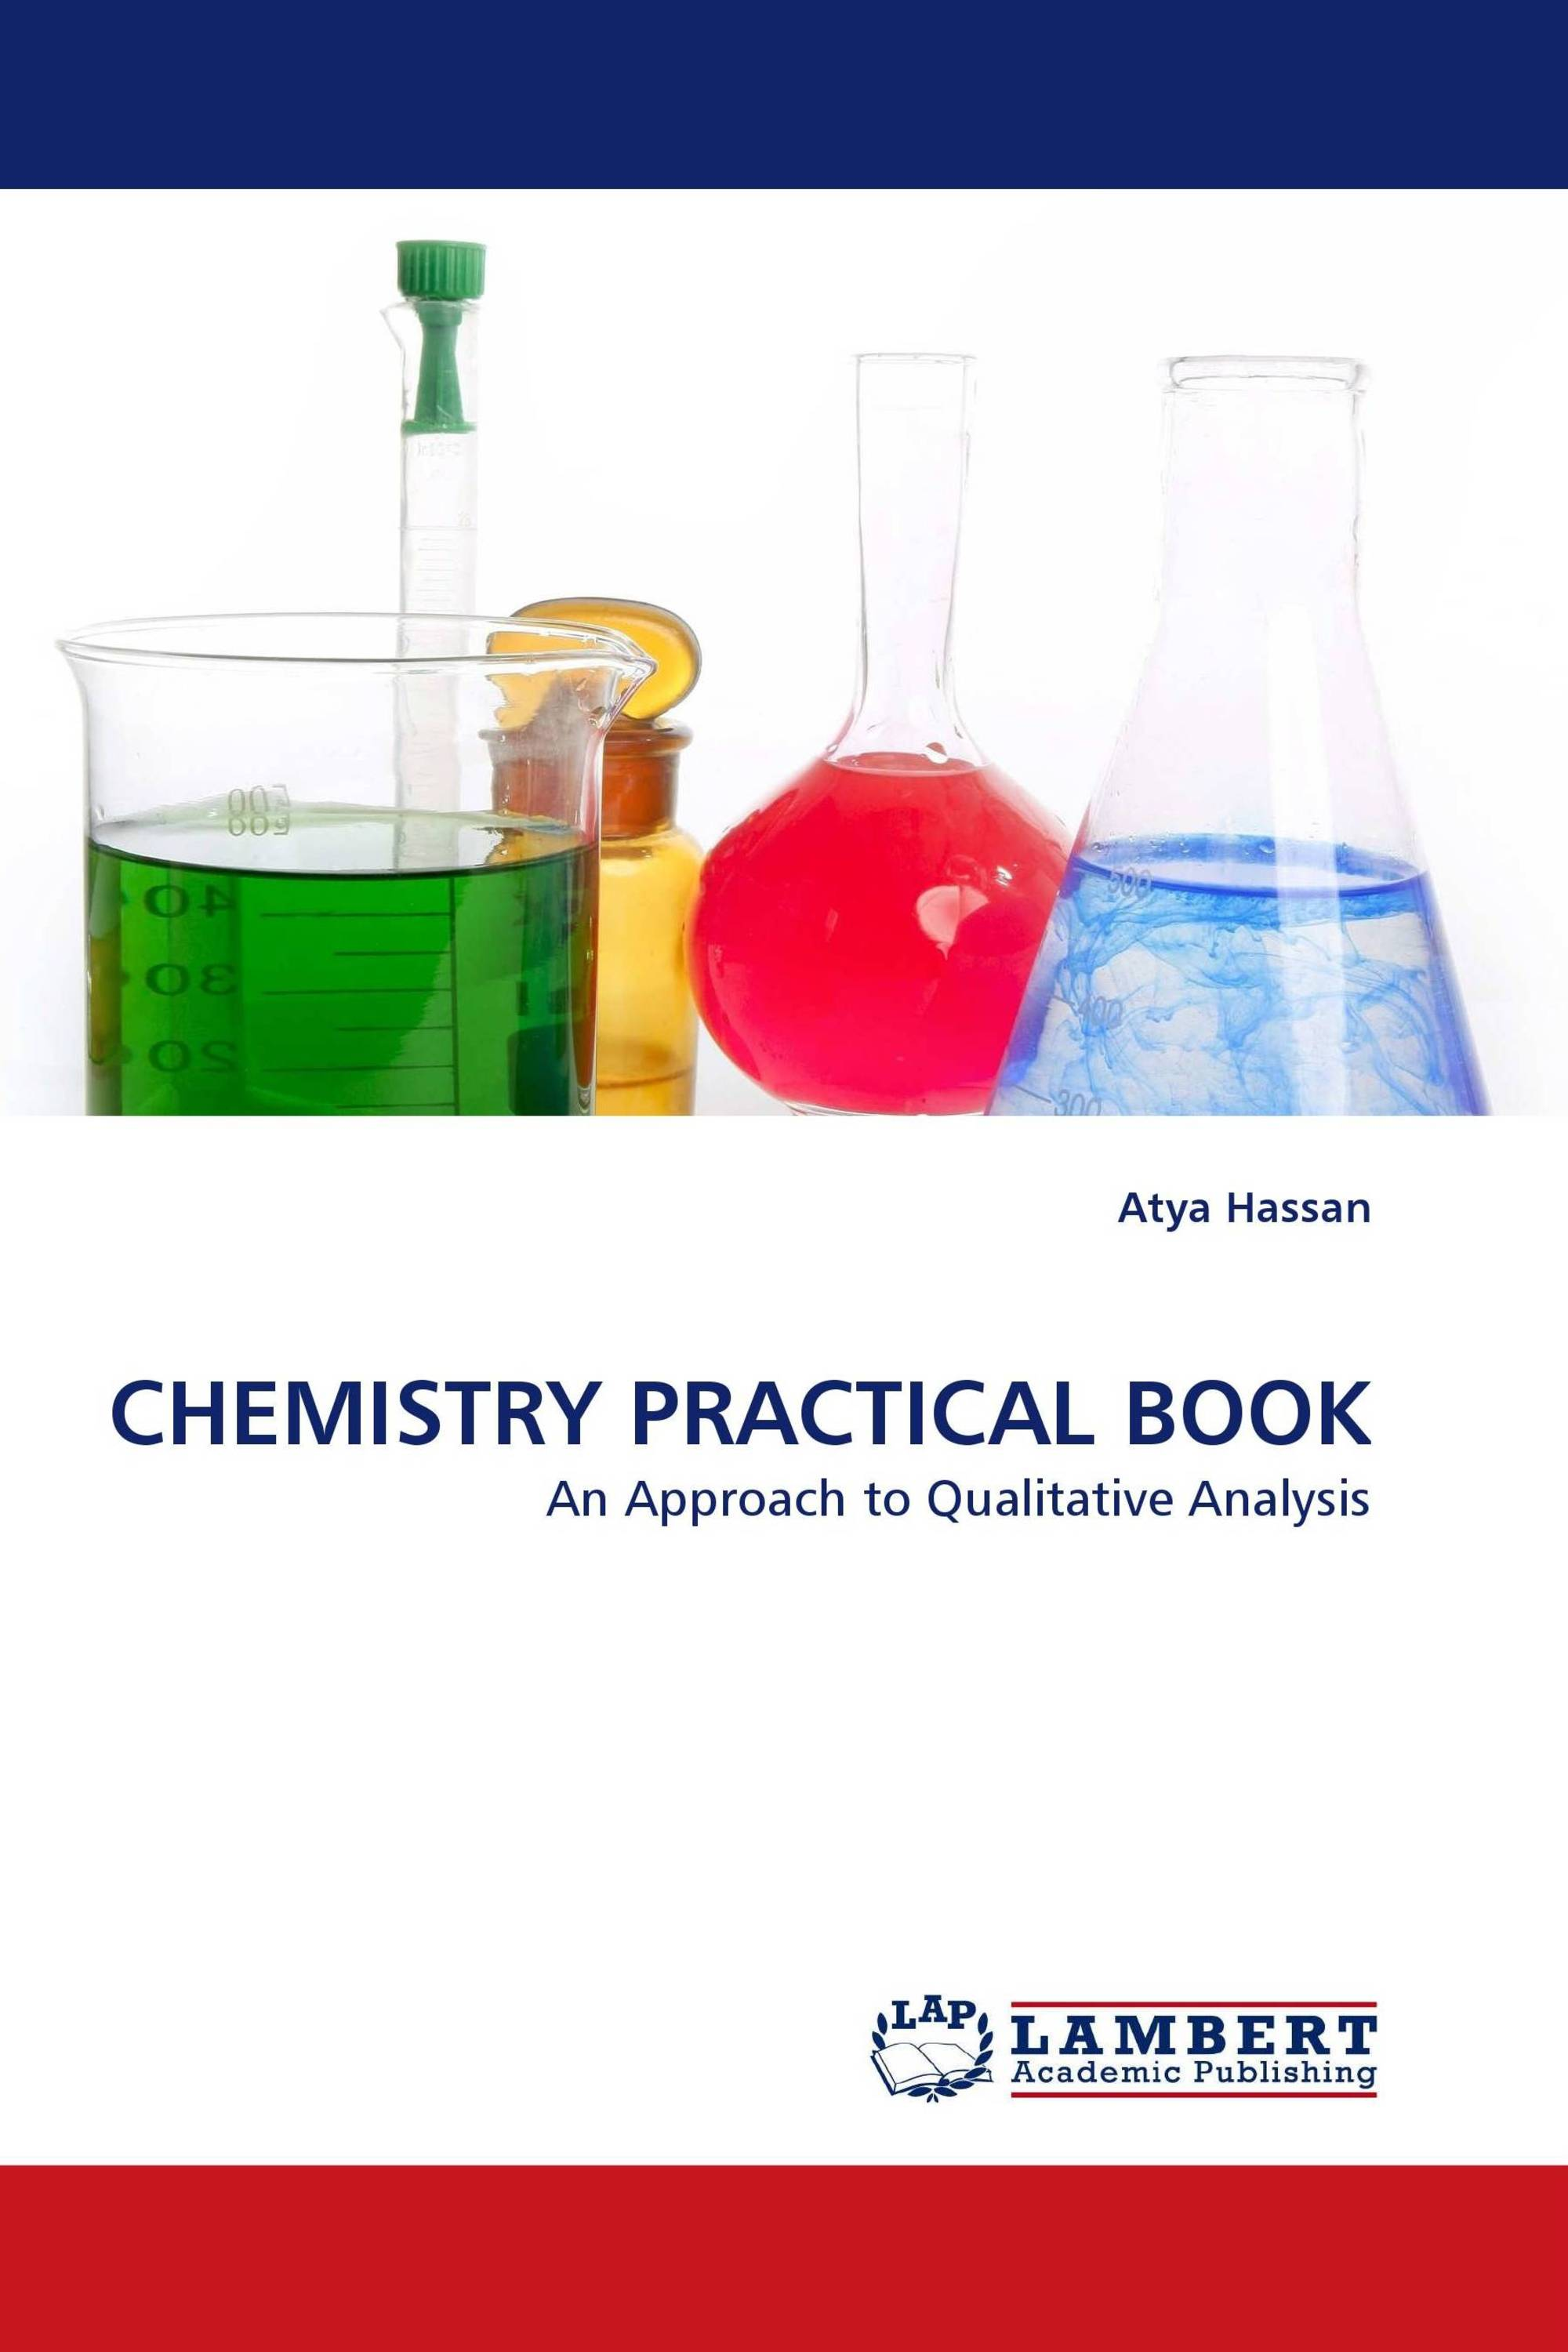 CHEMISTRY PRACTICAL BOOK / 978-3-8443-2831-8 / 9783844328318